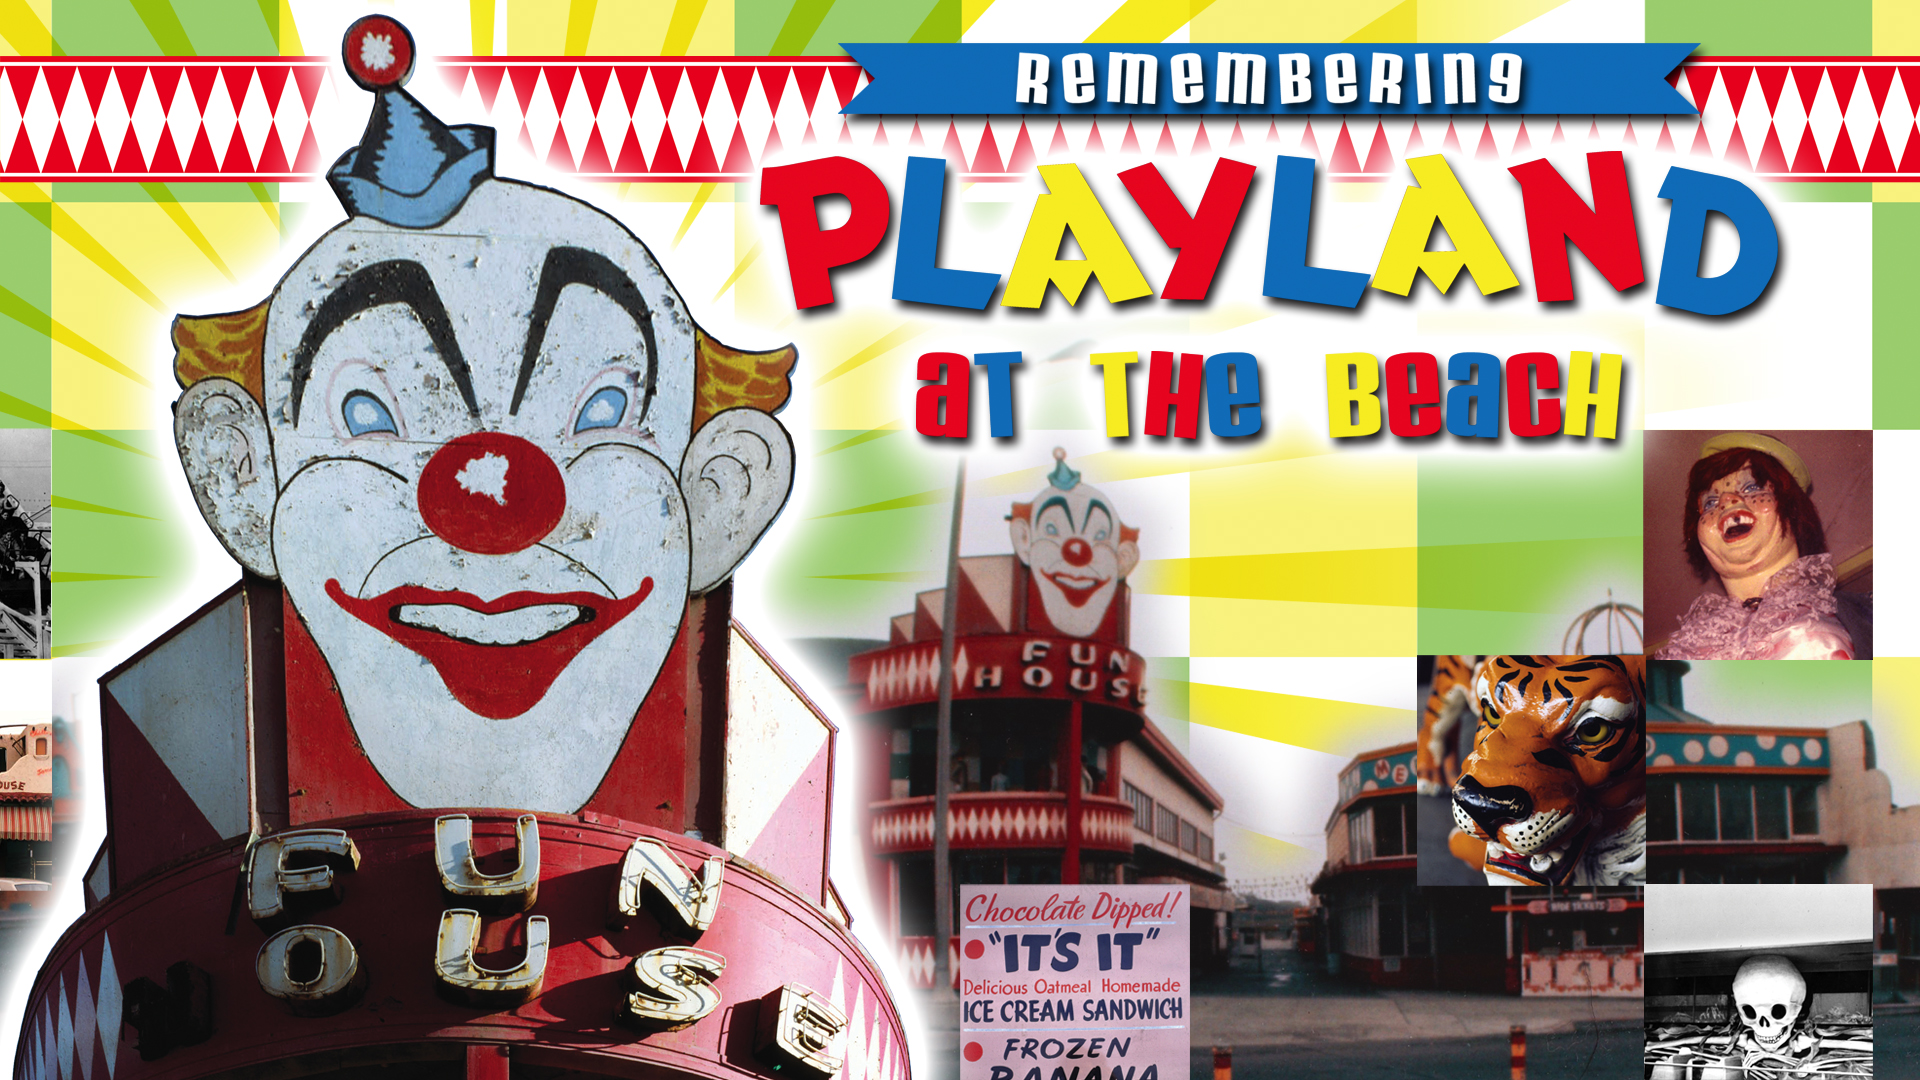 Remembering Playland at the Beach